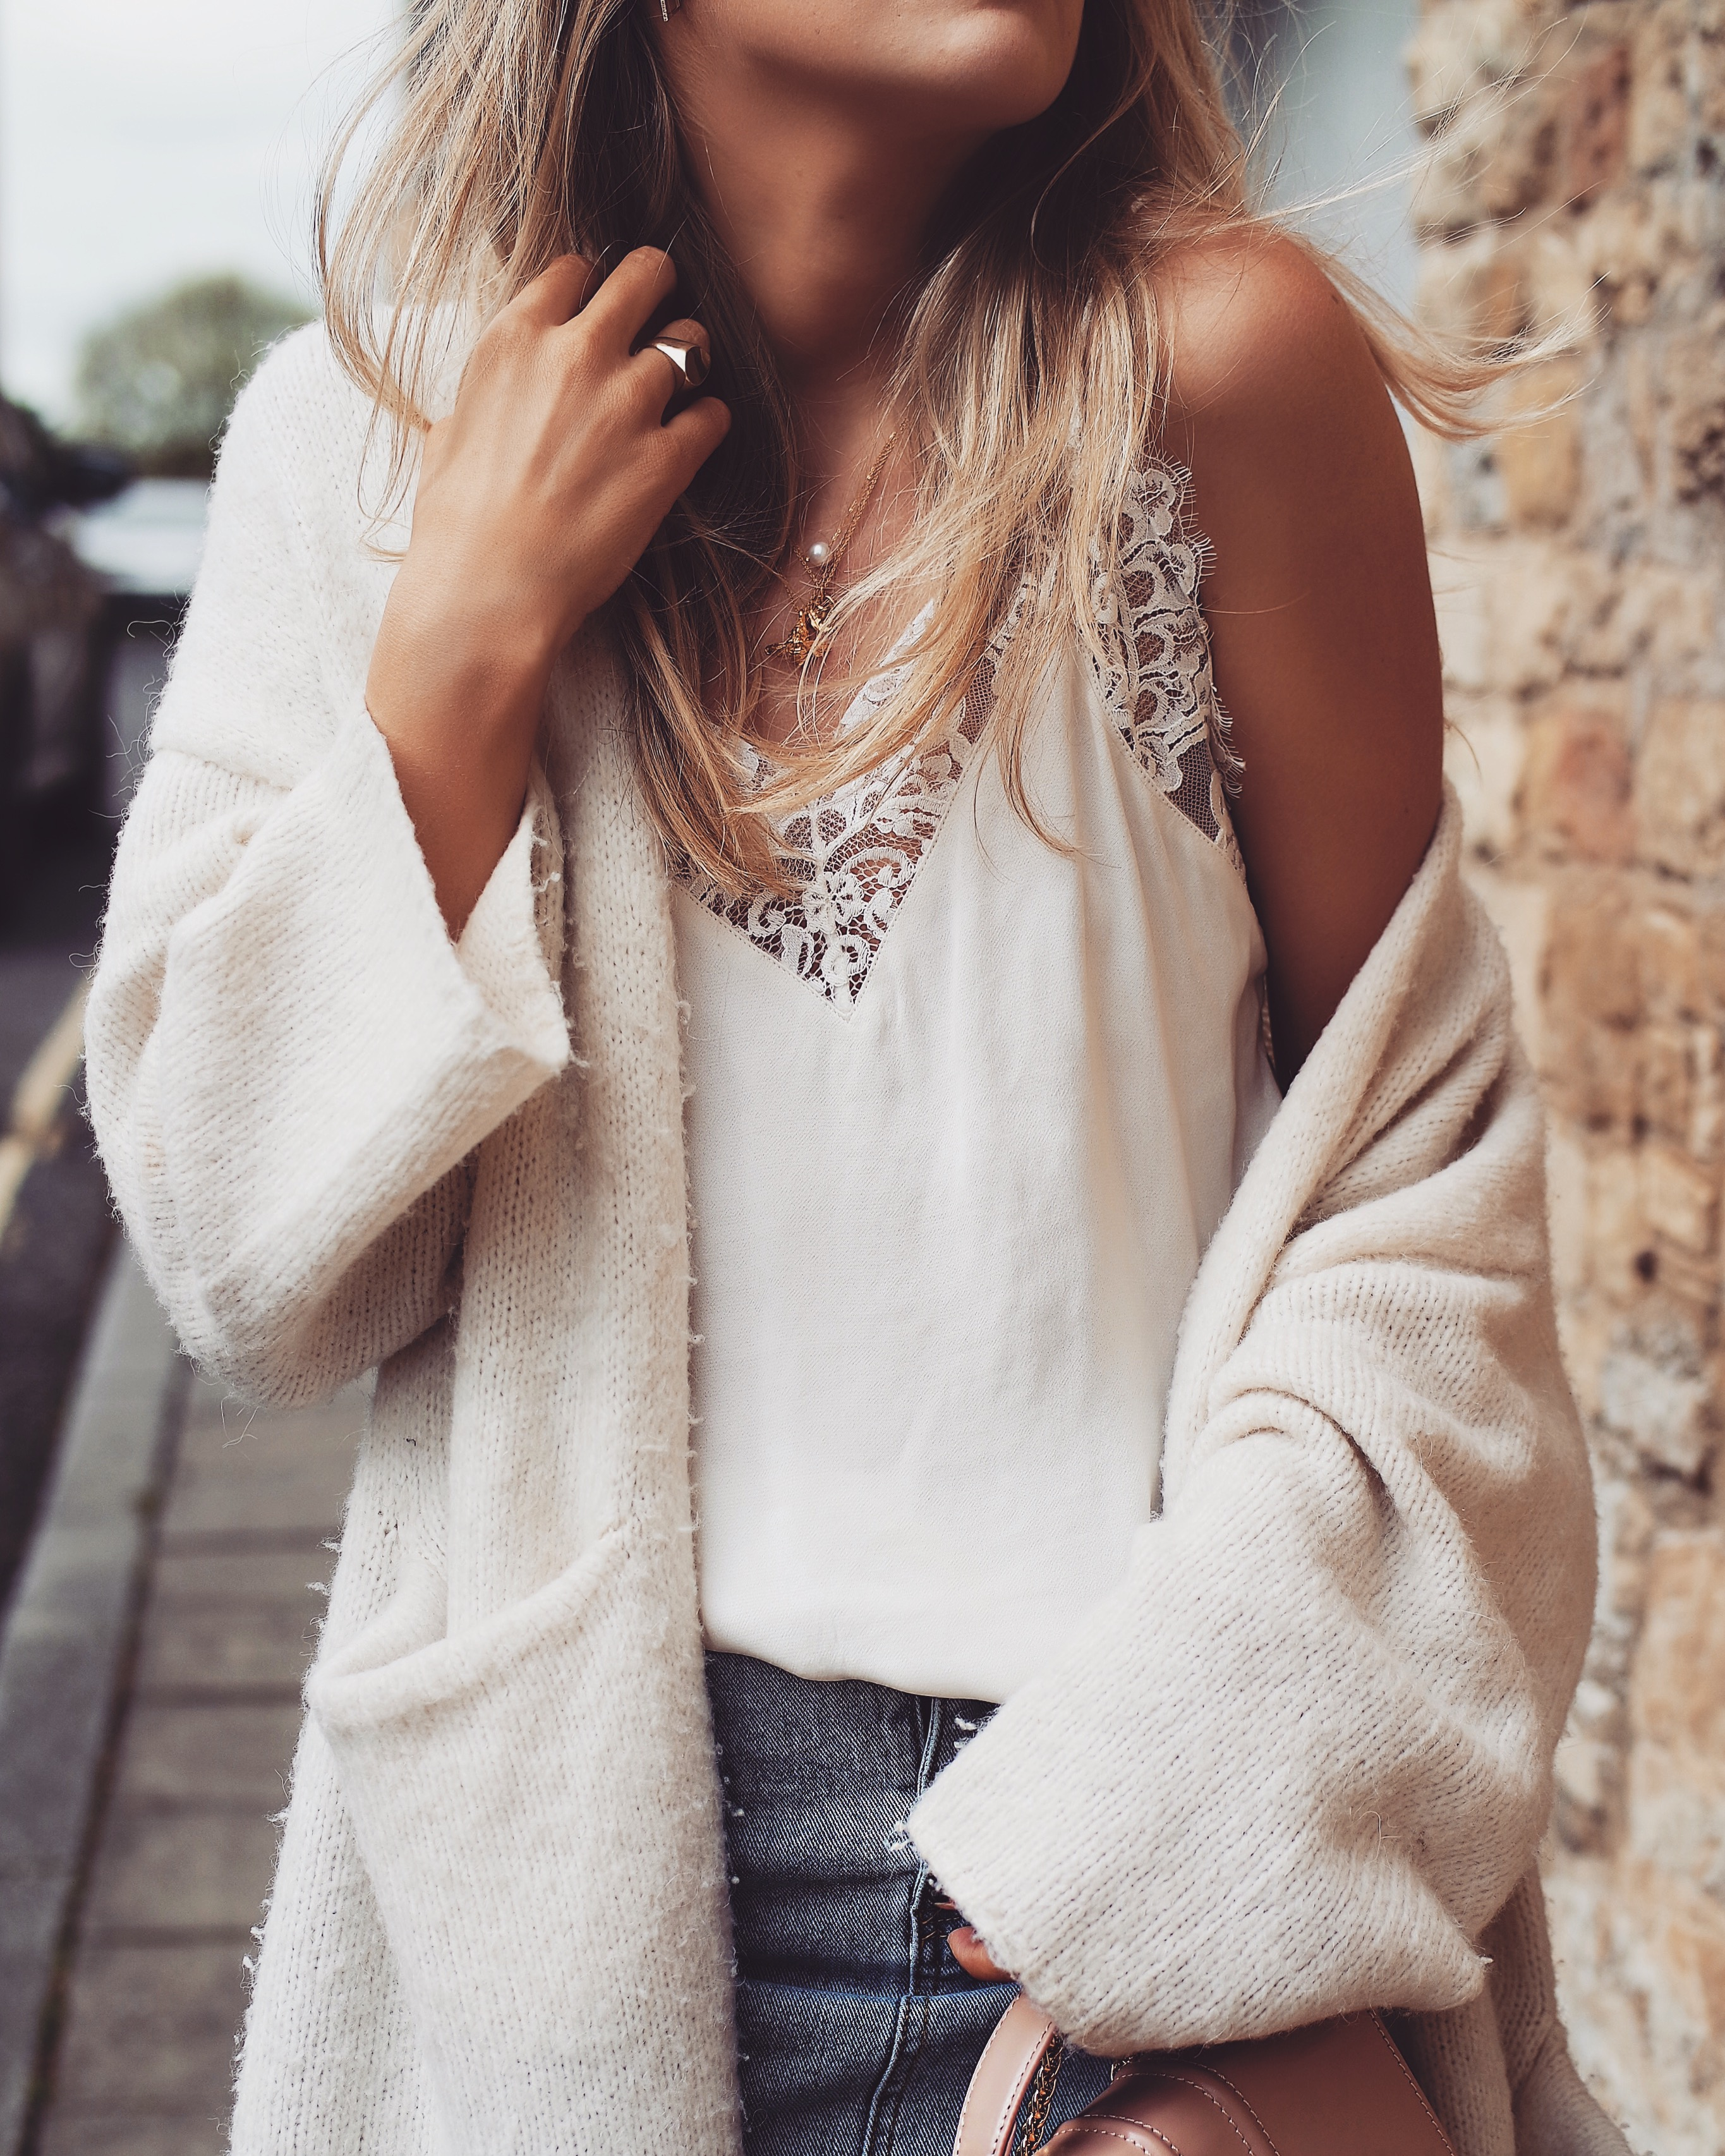 Jewel street - The Perfect Lace Cami